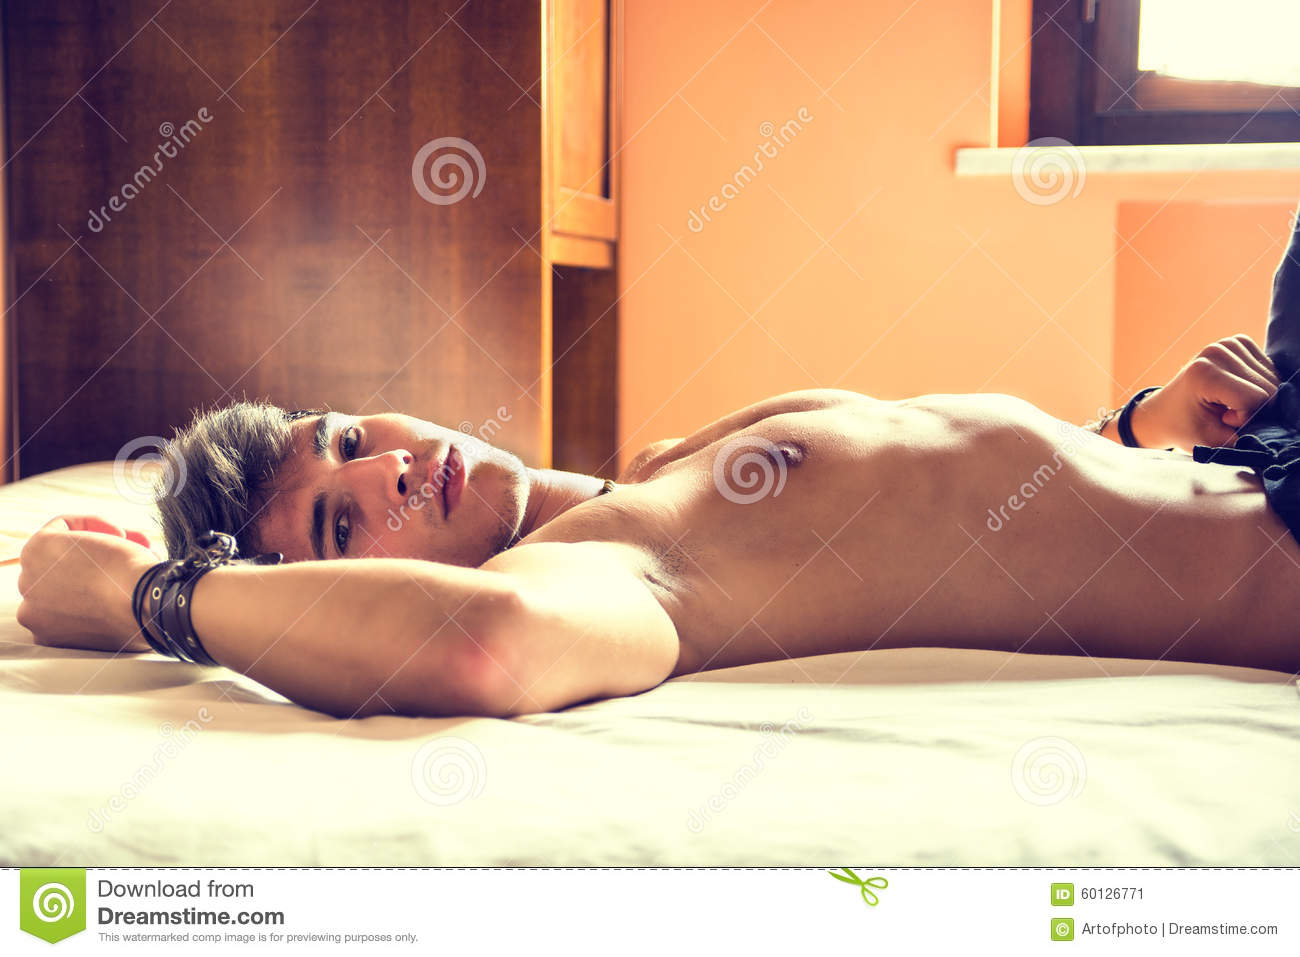 Boy naked in bed